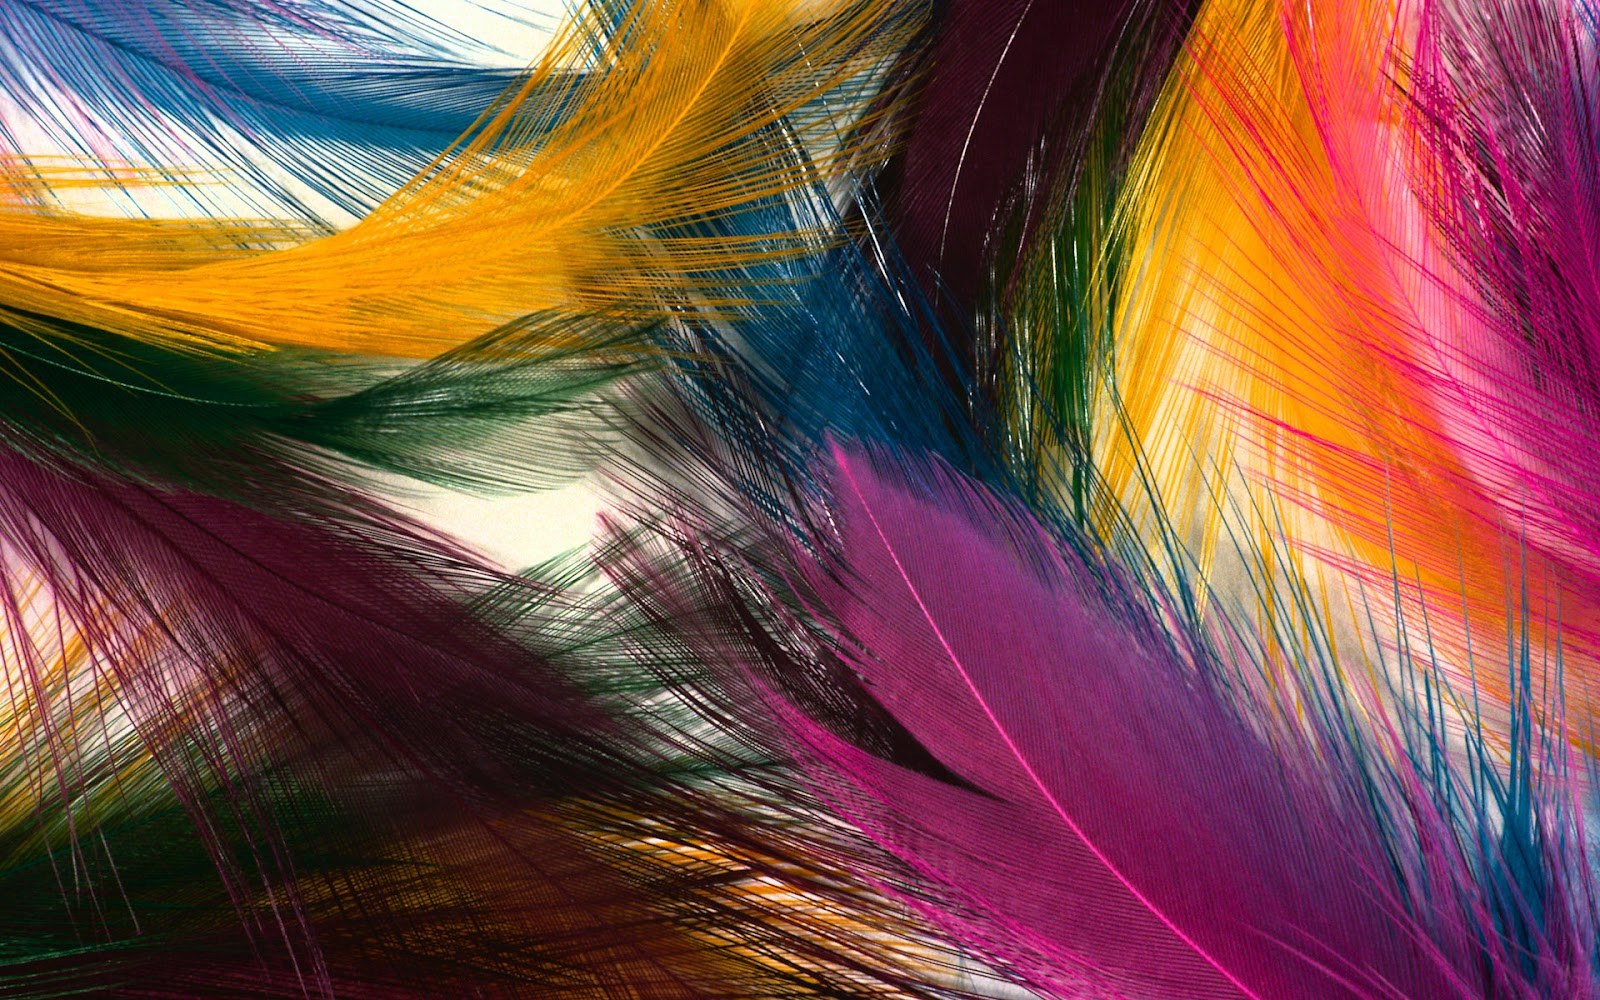 http://3.bp.blogspot.com/-_xwzGFNhFRw/T3KeUtka4mI/AAAAAAAAADs/8_XVkdjIID0/s1600/feather-colorful-wallpaper_1920x1200_85539.jpg